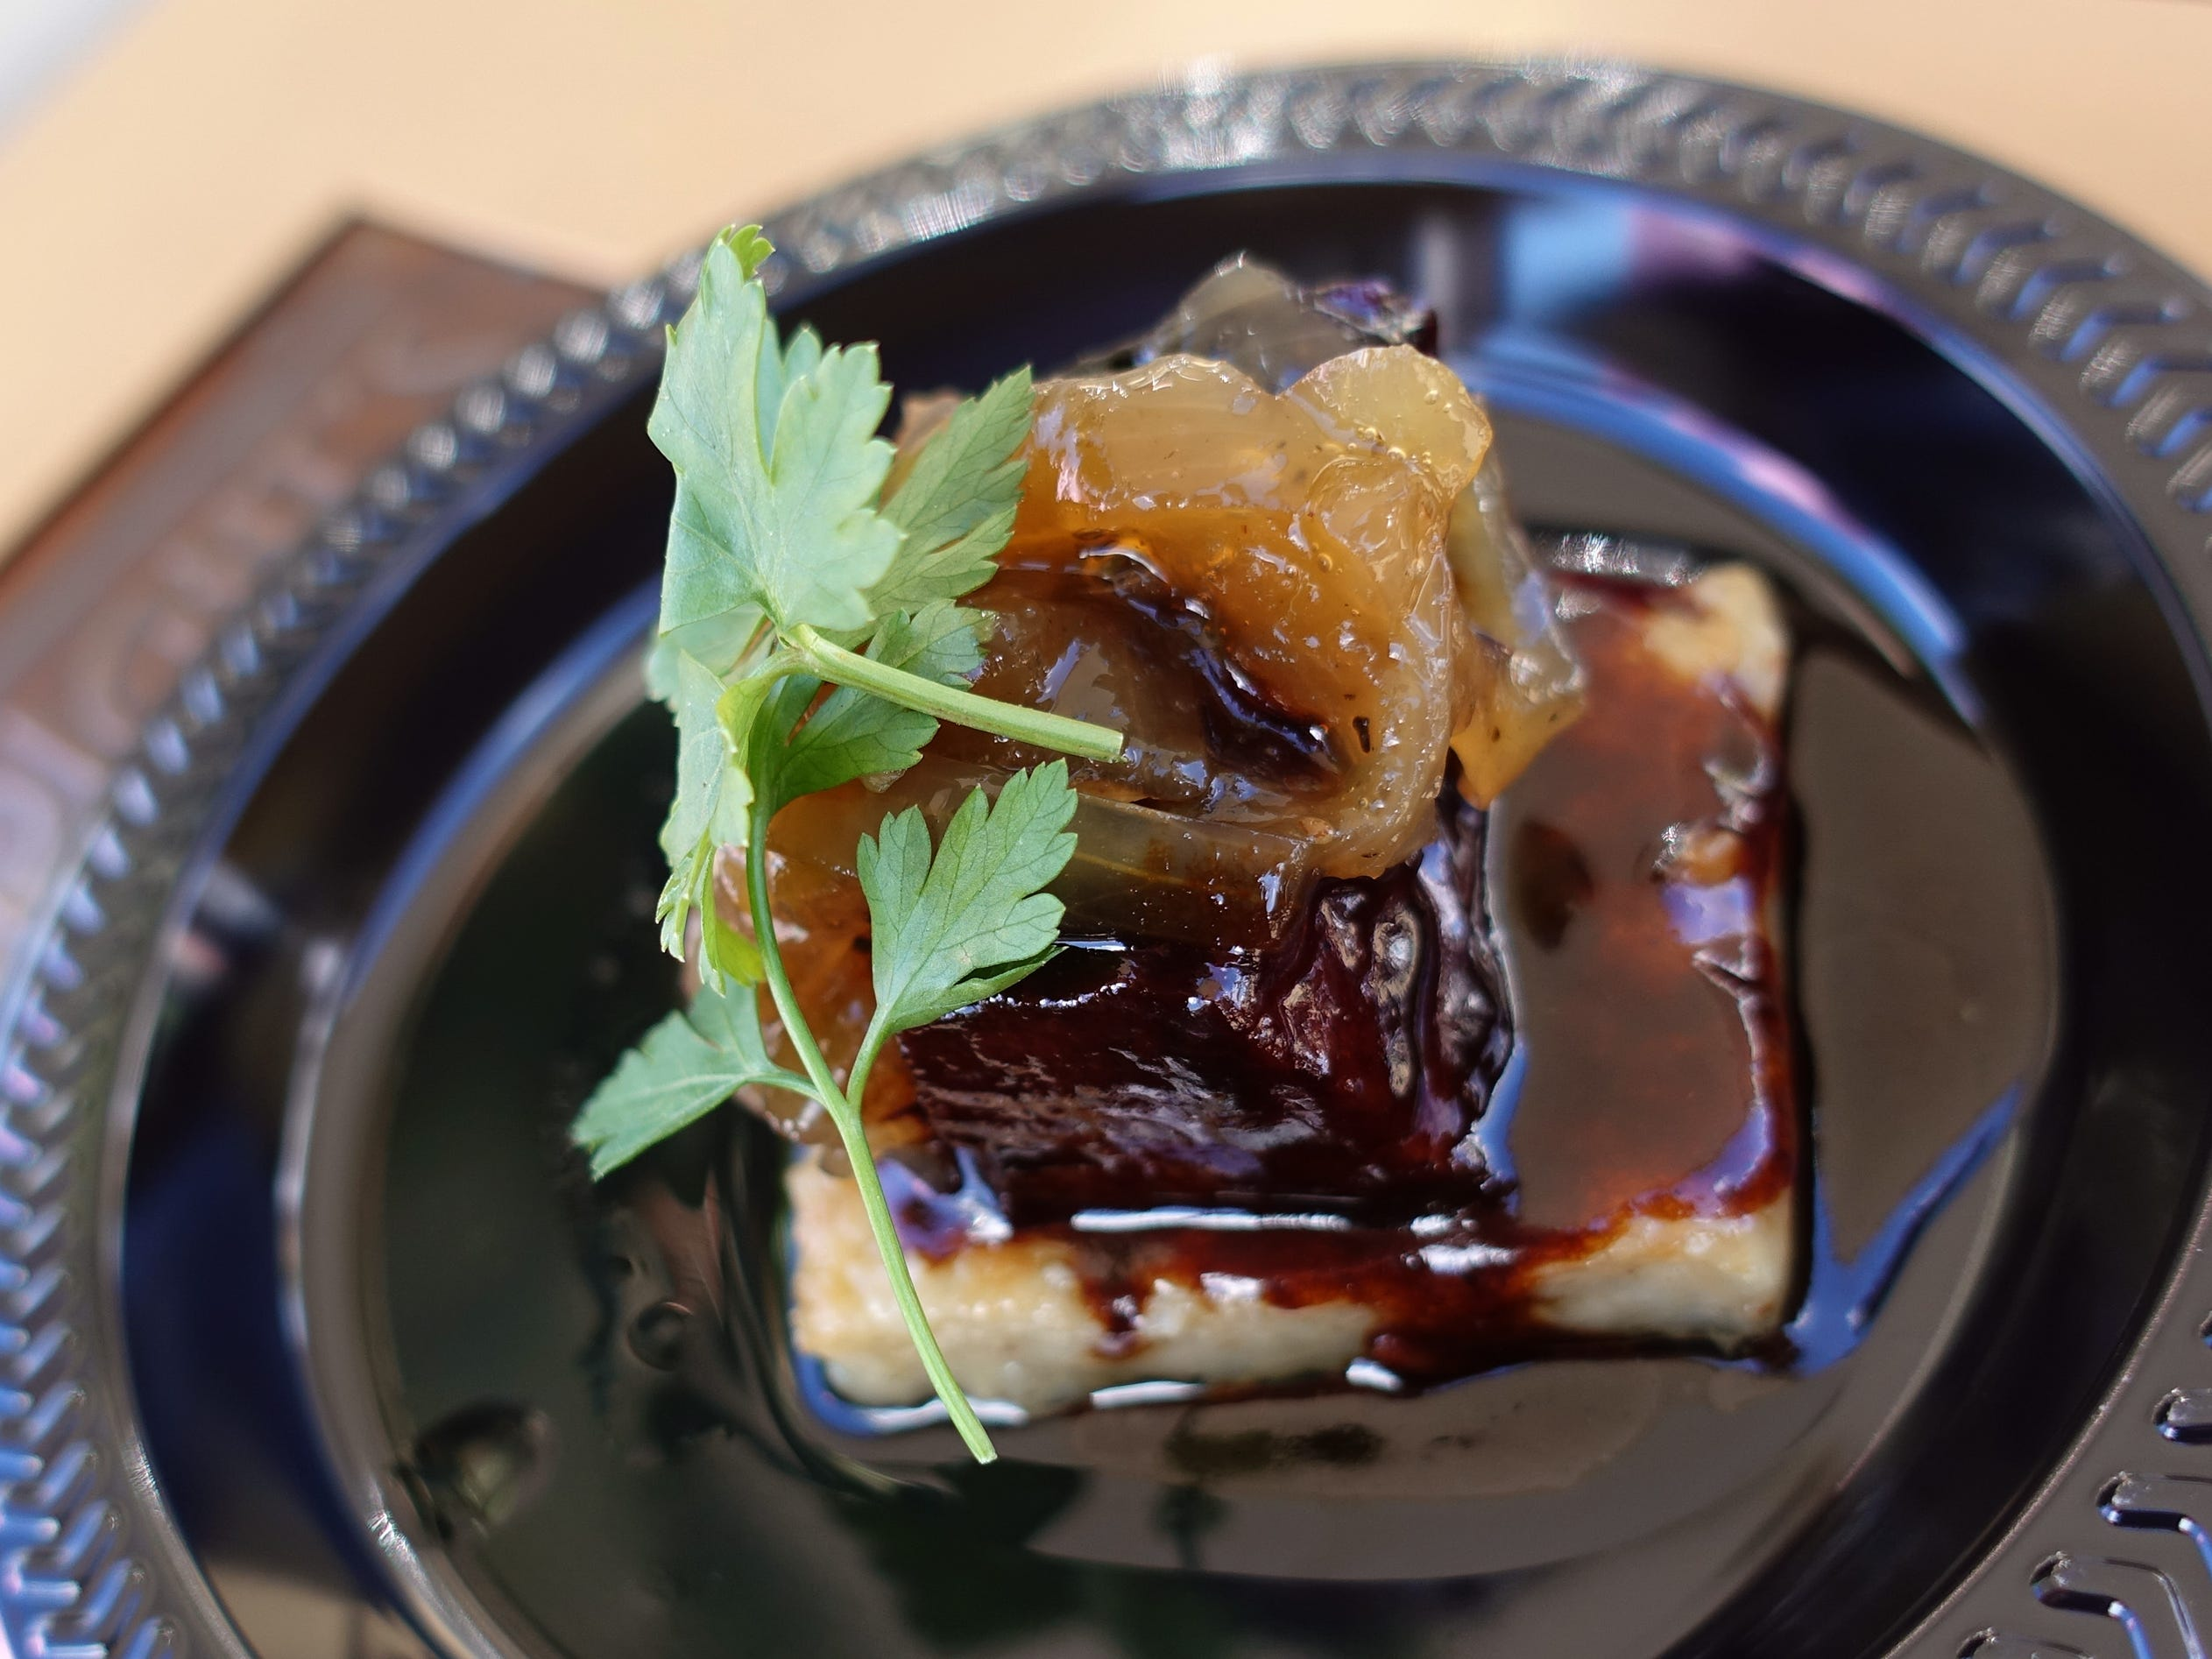 Braised short rib with Parmigiano potatoes, red wine and horseradish-bleu cheese crumble from Wright's at The Biltmore at the 2019 Devour Culinary Classic at the Desert Botanical Garden in Phoenix.